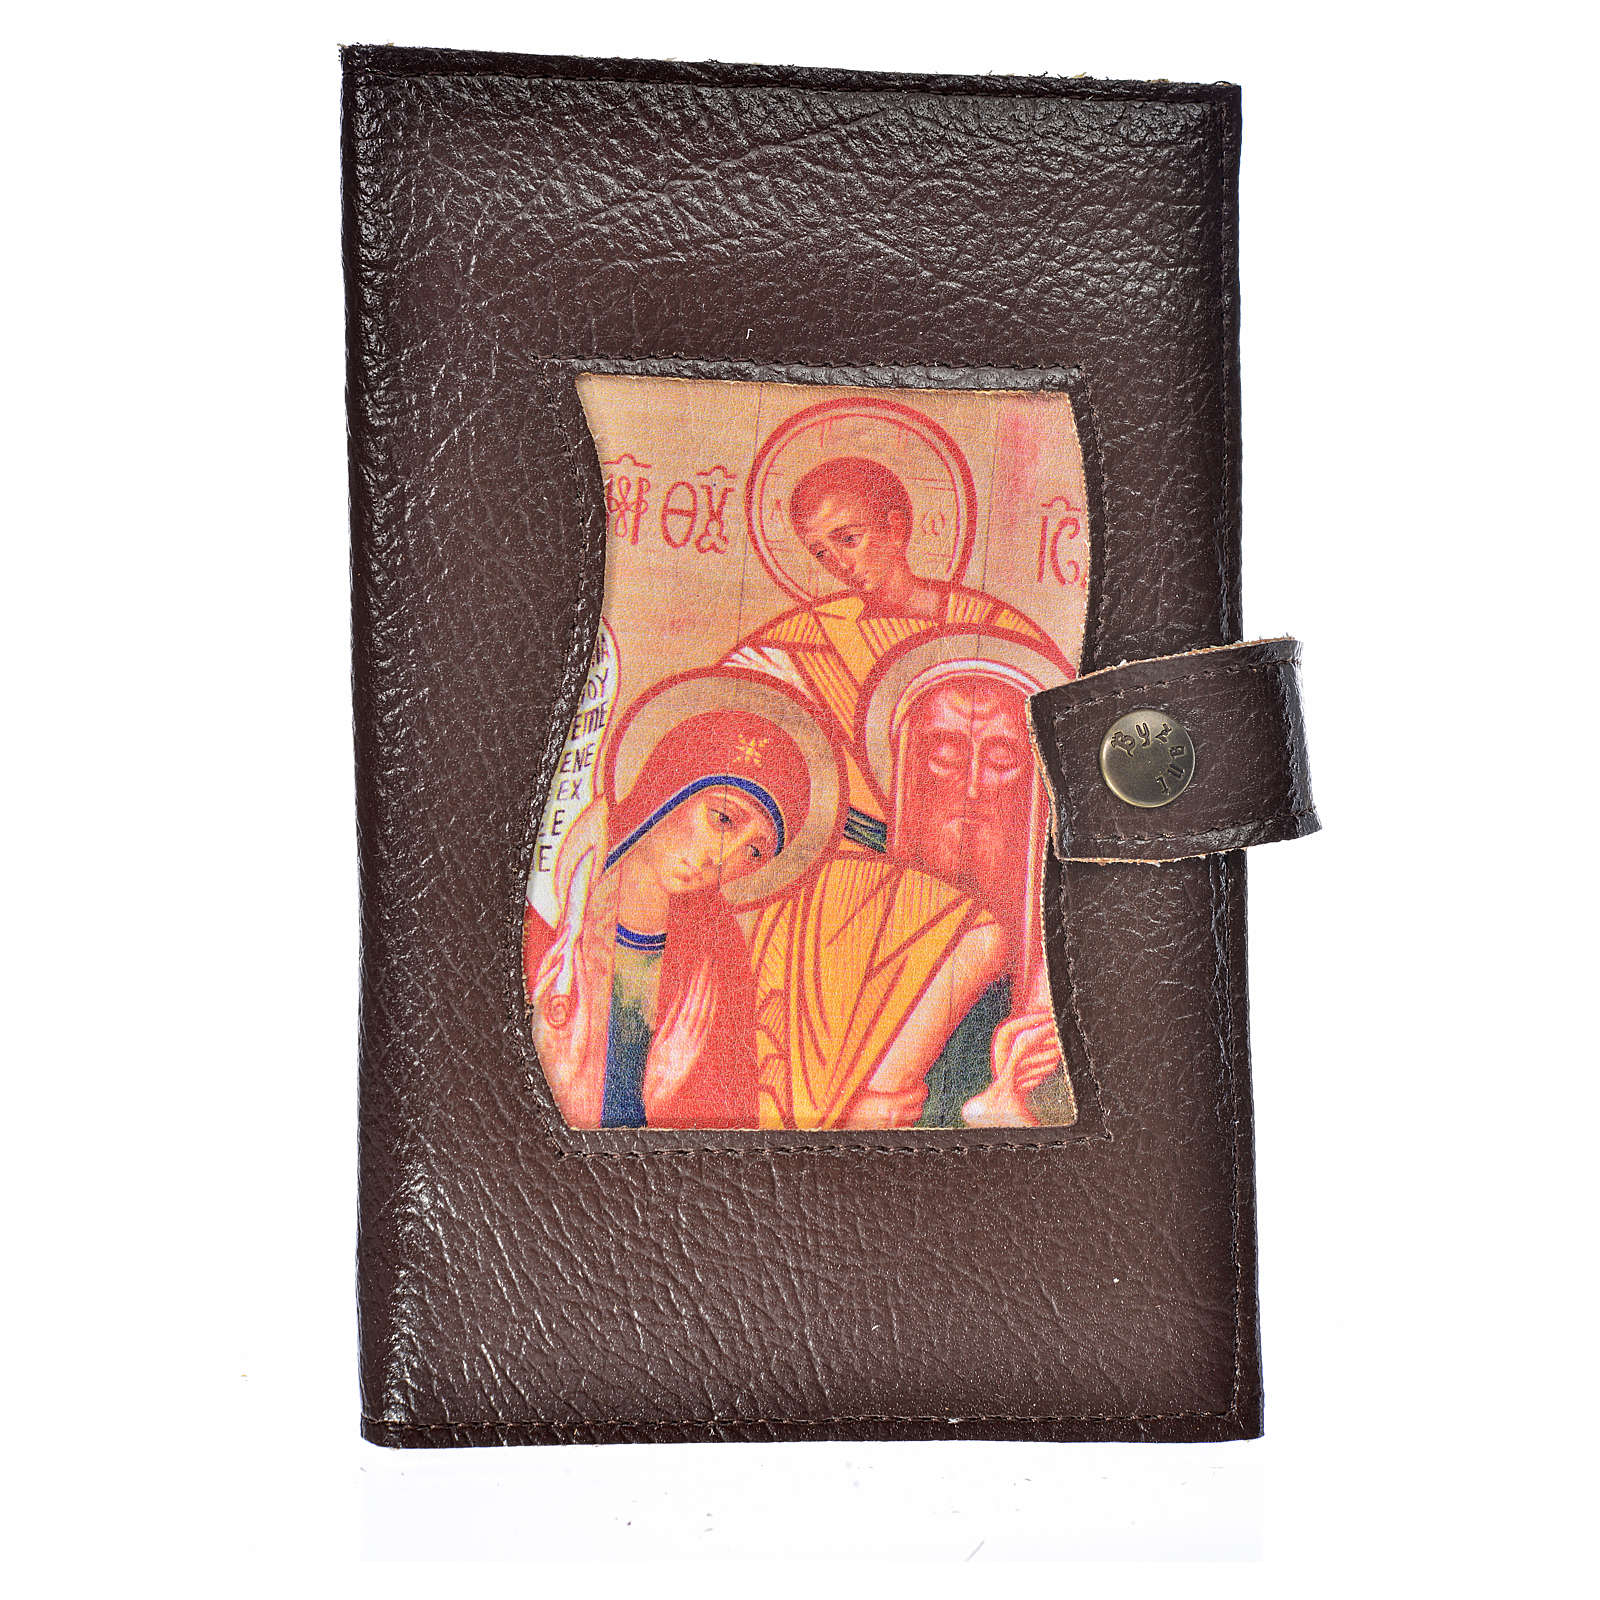 Ordinary Time III cover in beige leather imitation with image of the Holy Family 4